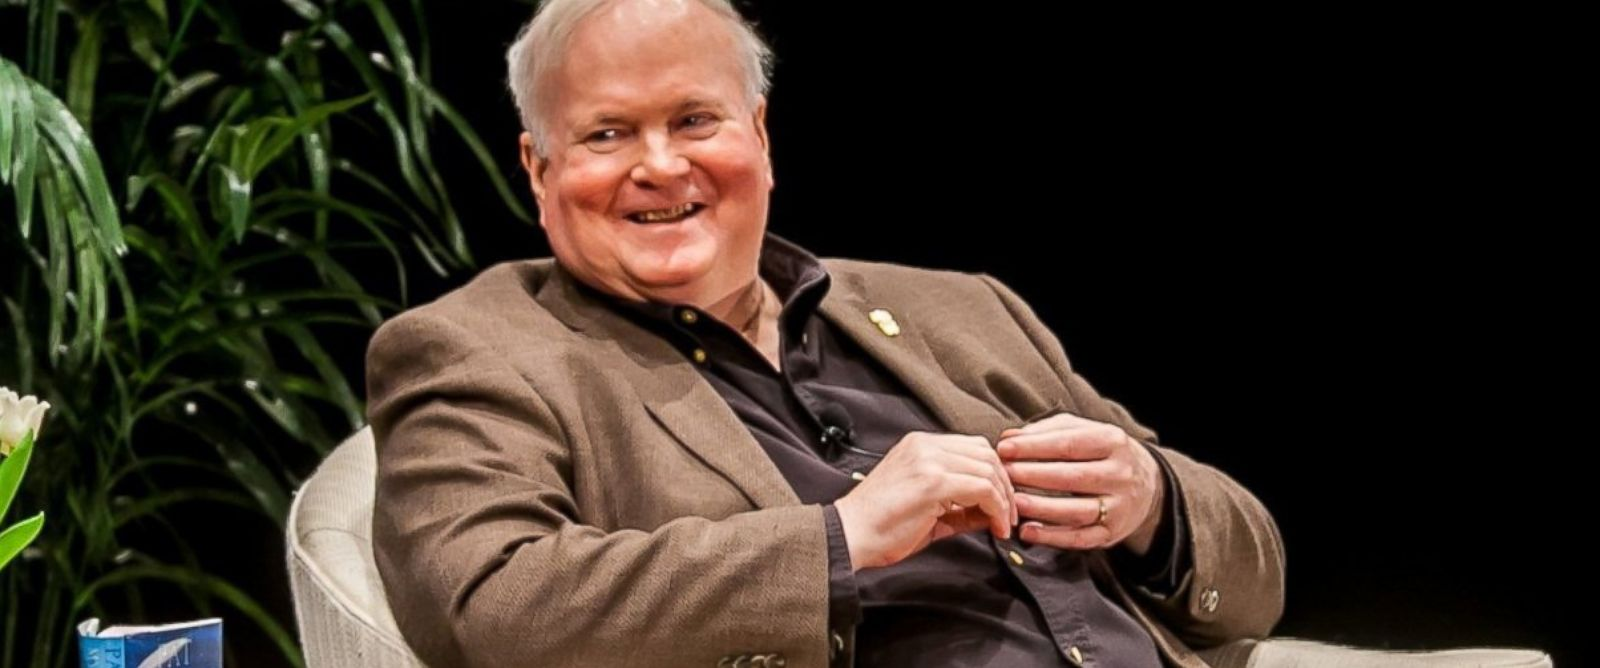 PHOTO:Author Pat Conroy is interviewed by Walter Edgar at the Township Auditorium in Columbia, S.C. Feb. 27, 2014.